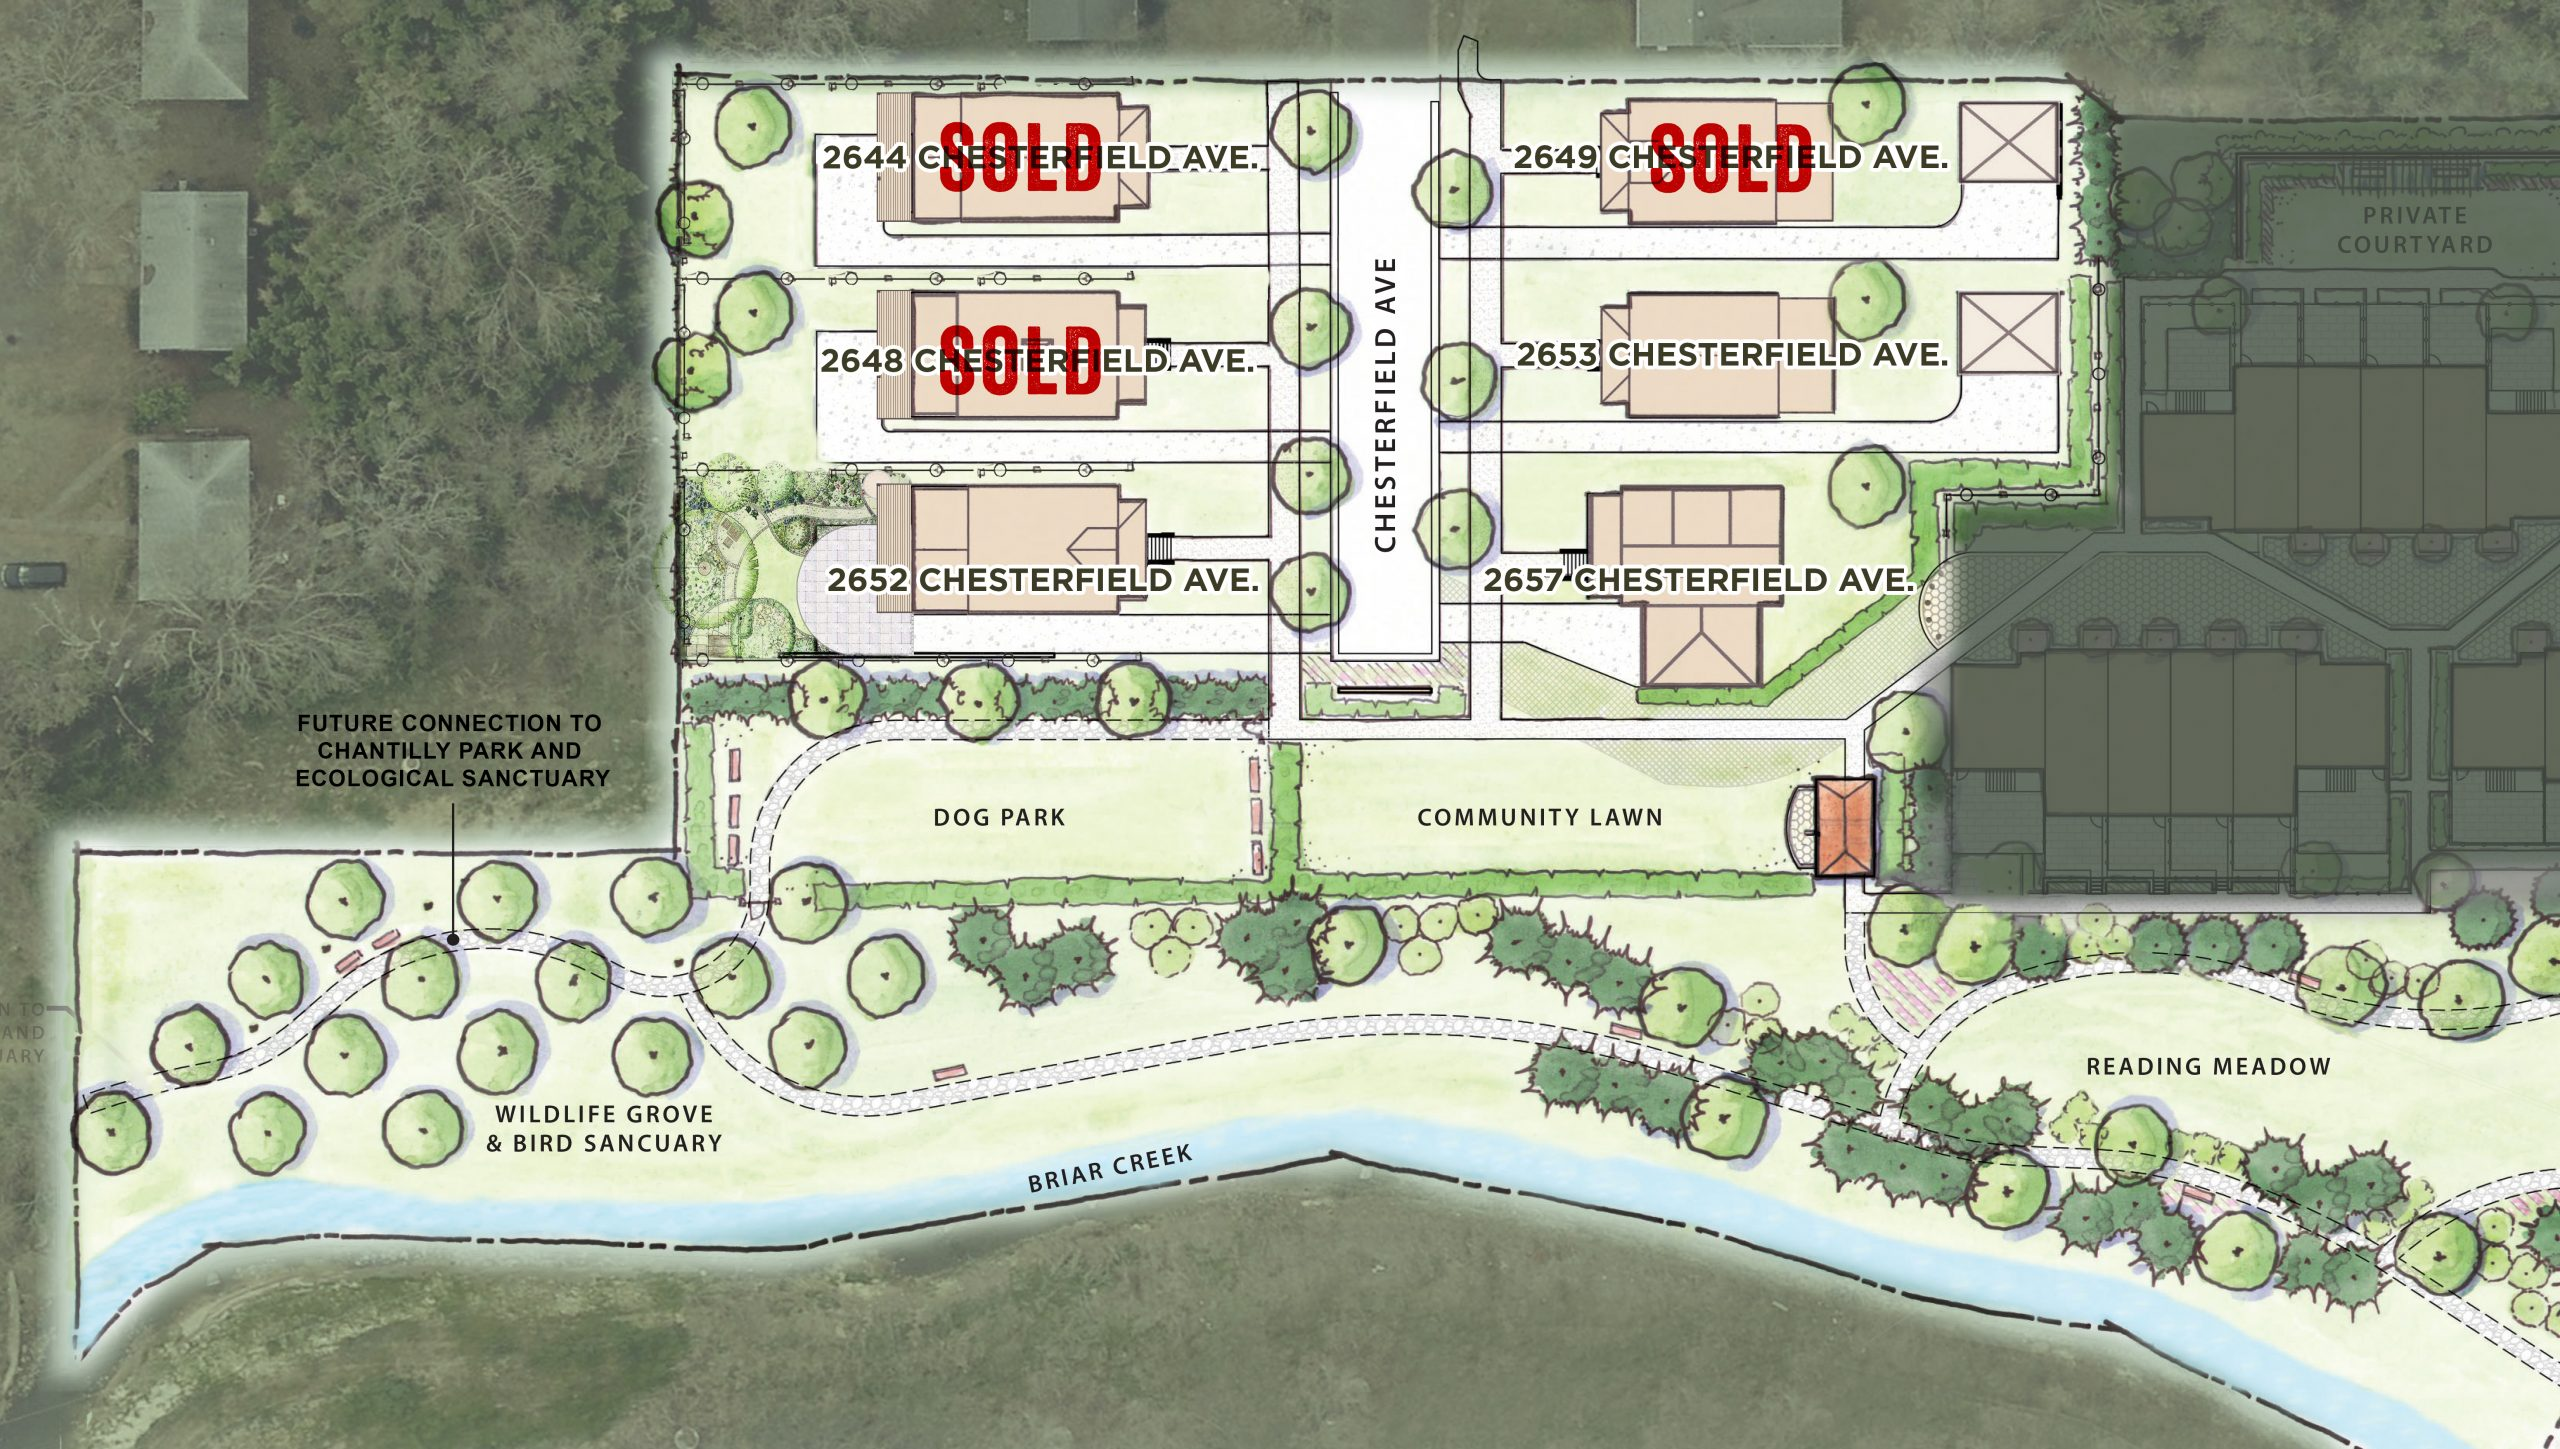 Home Site Plan and Availability